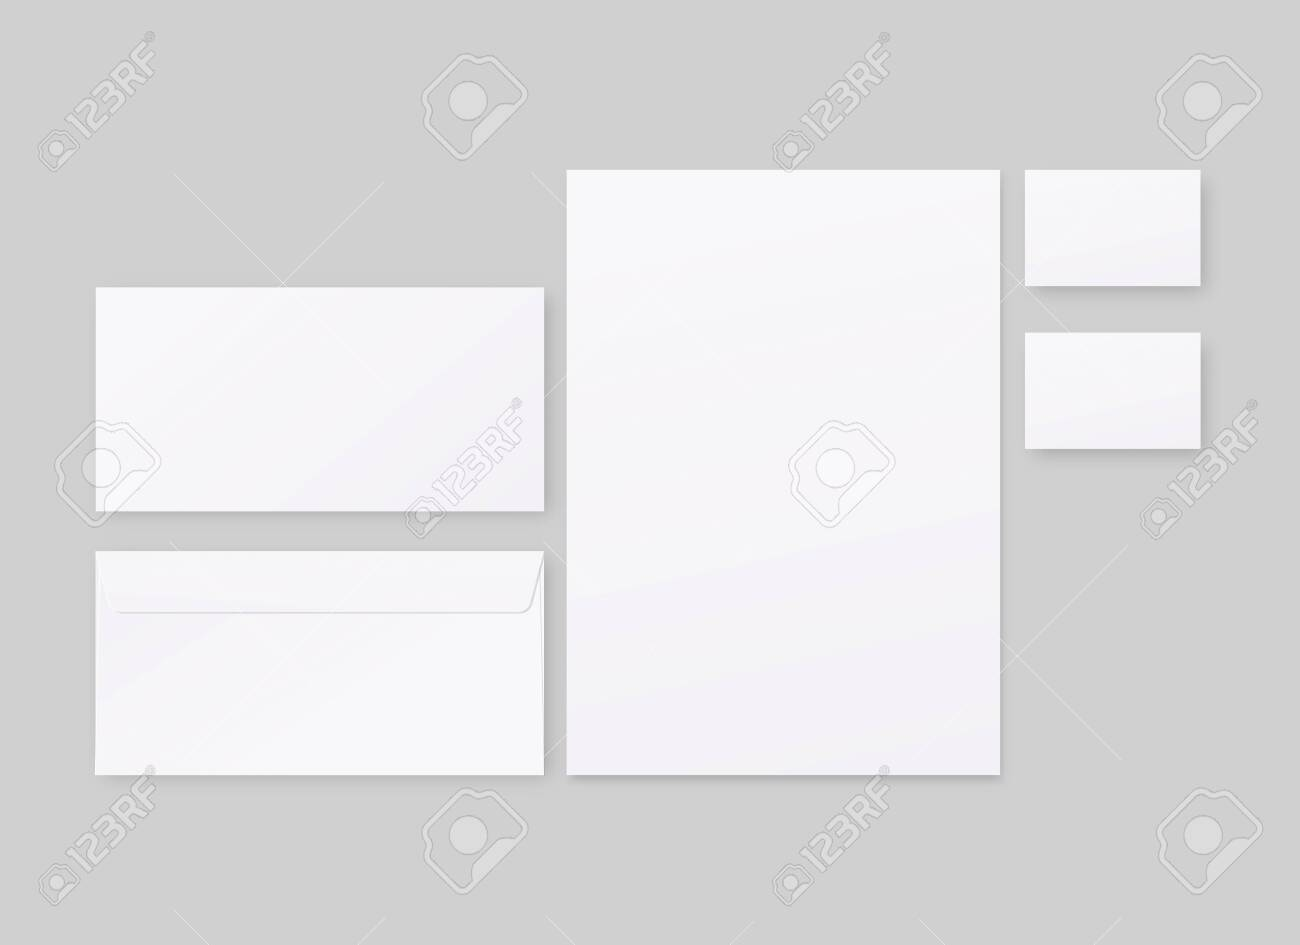 Corporate identity template set. Business stationery mockup with envelope, paper, business cards. Mockup vector isolated. Template design. Realistic vector illustration. - 148066576